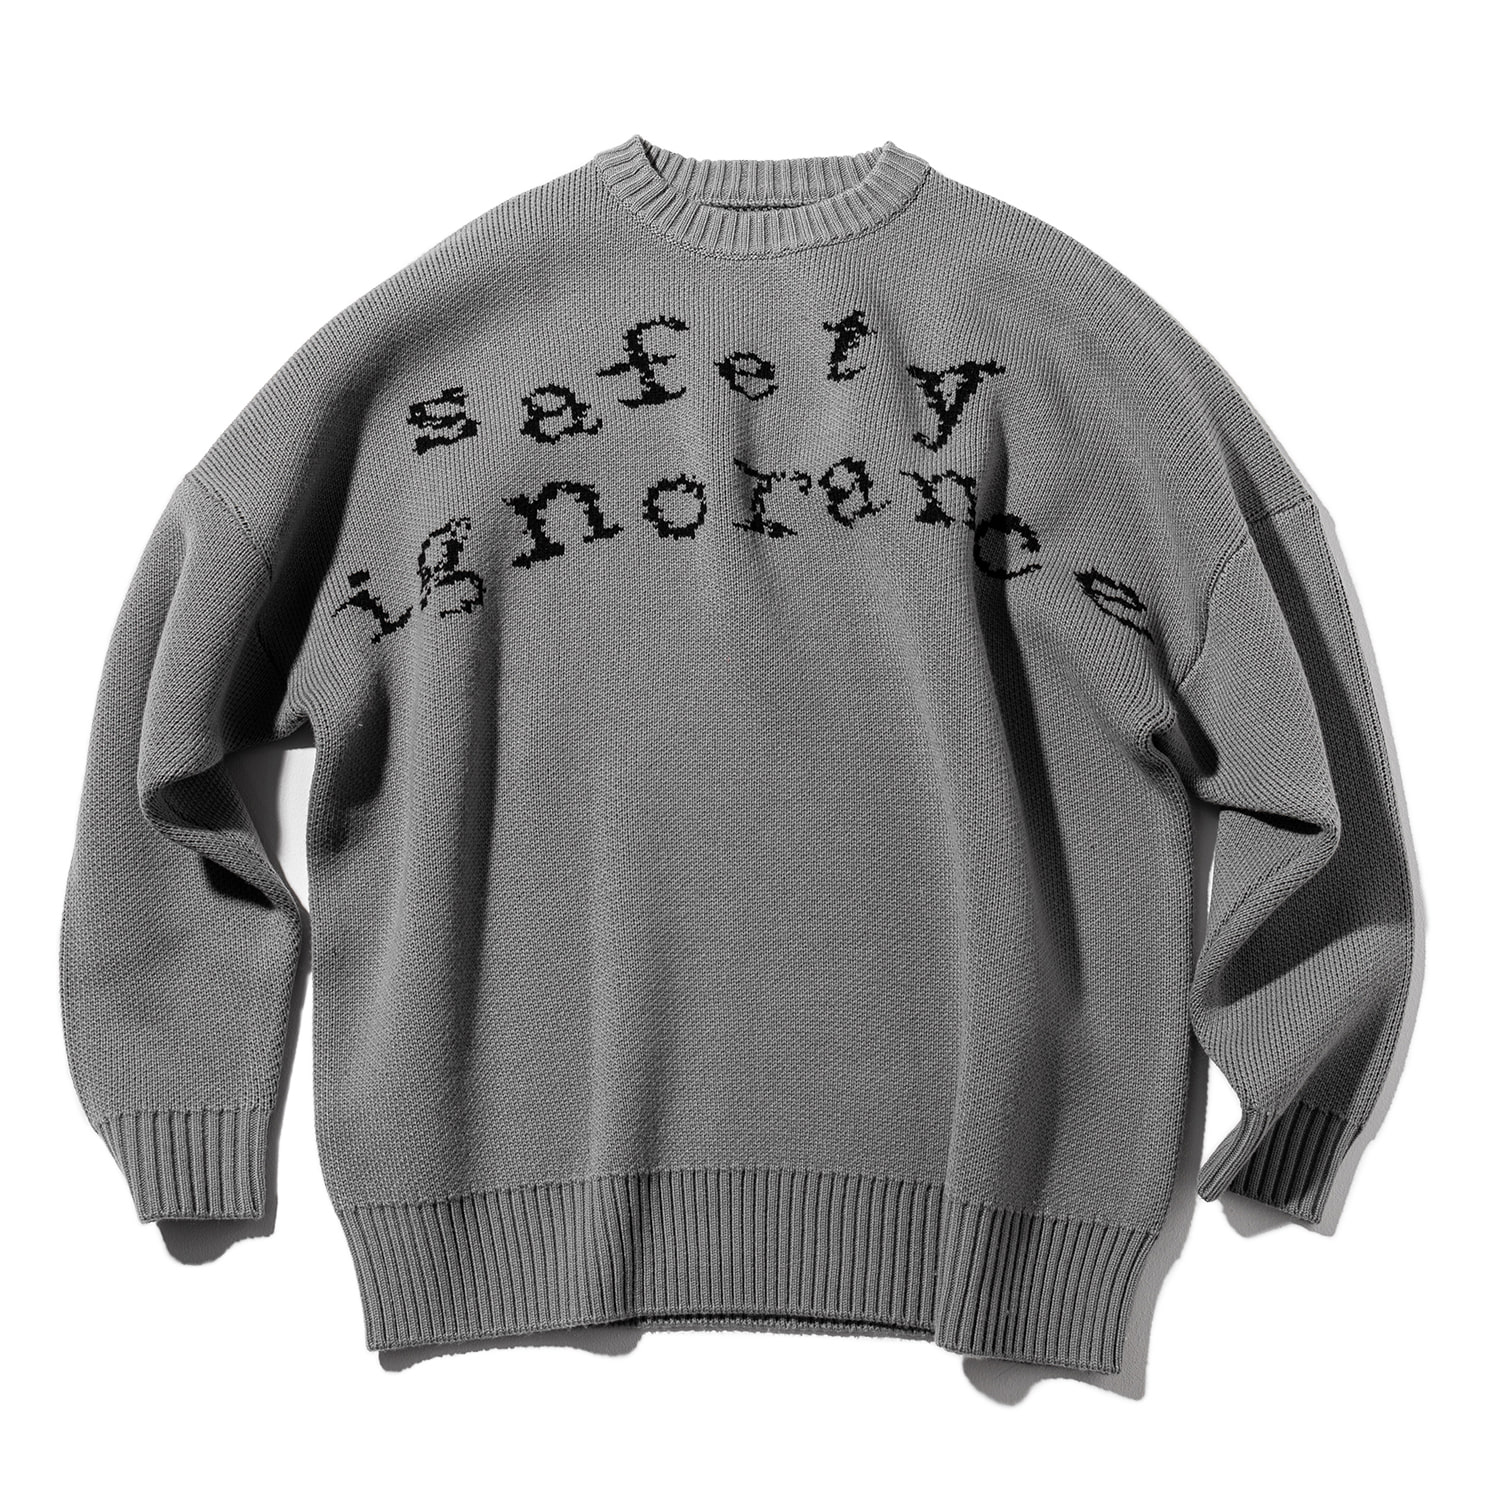 SAFETY LETTERING WOOL KNIT MWZNT001-GY